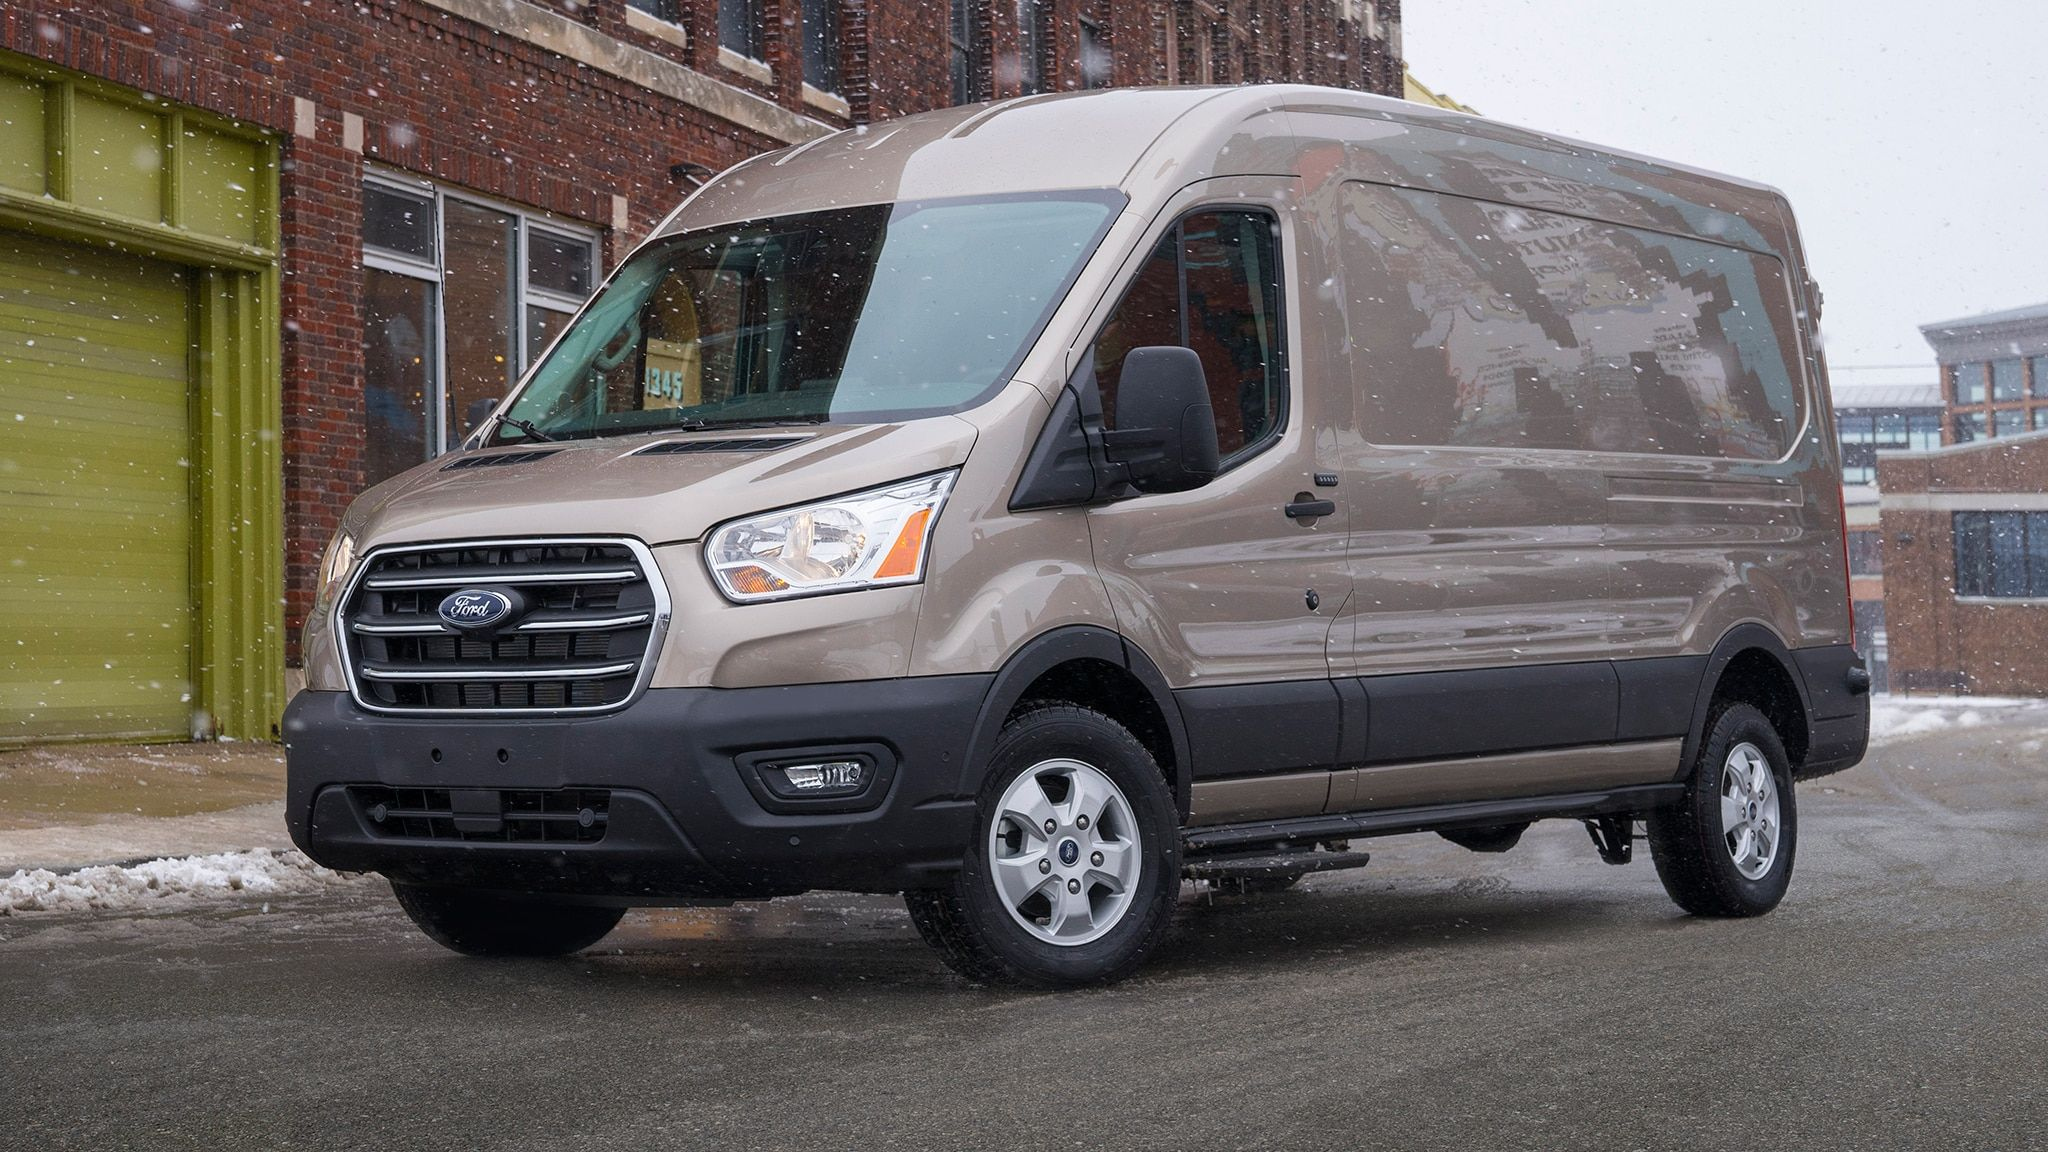 2021 Ford Transit Cargo Van Review: Price, Mpg, Rivals